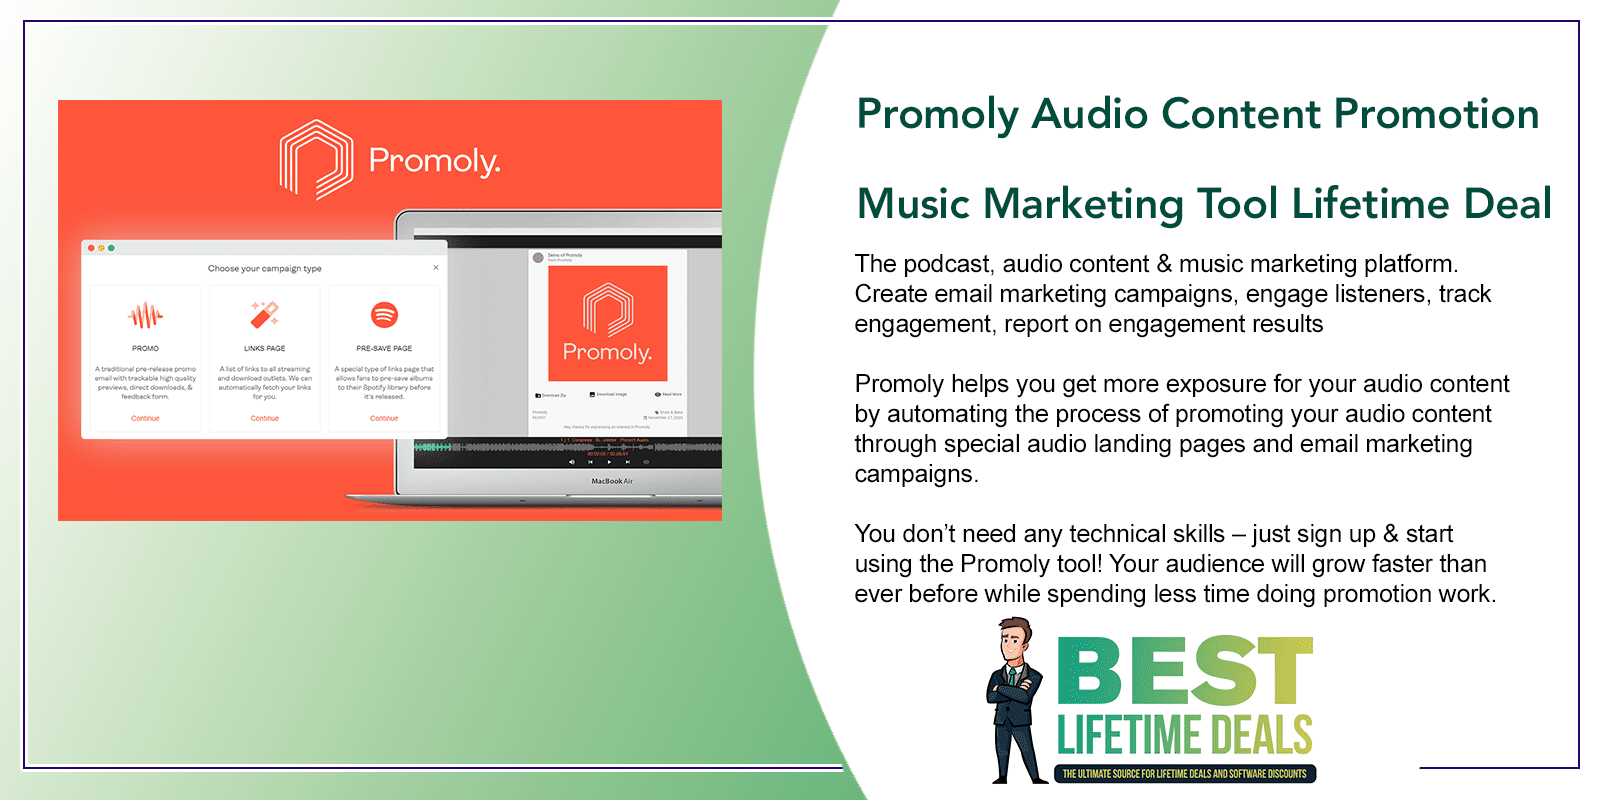 Promoly Audio Content Promotion Music Marketing Tool Featured Image